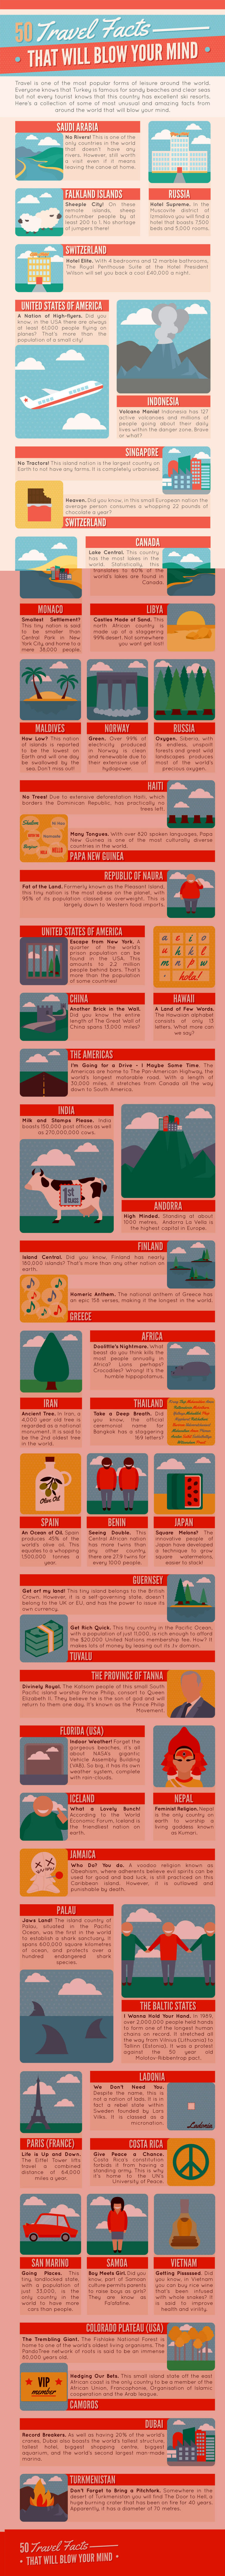 50 Travel Facts That Will Blow Your Mind (Infographic)